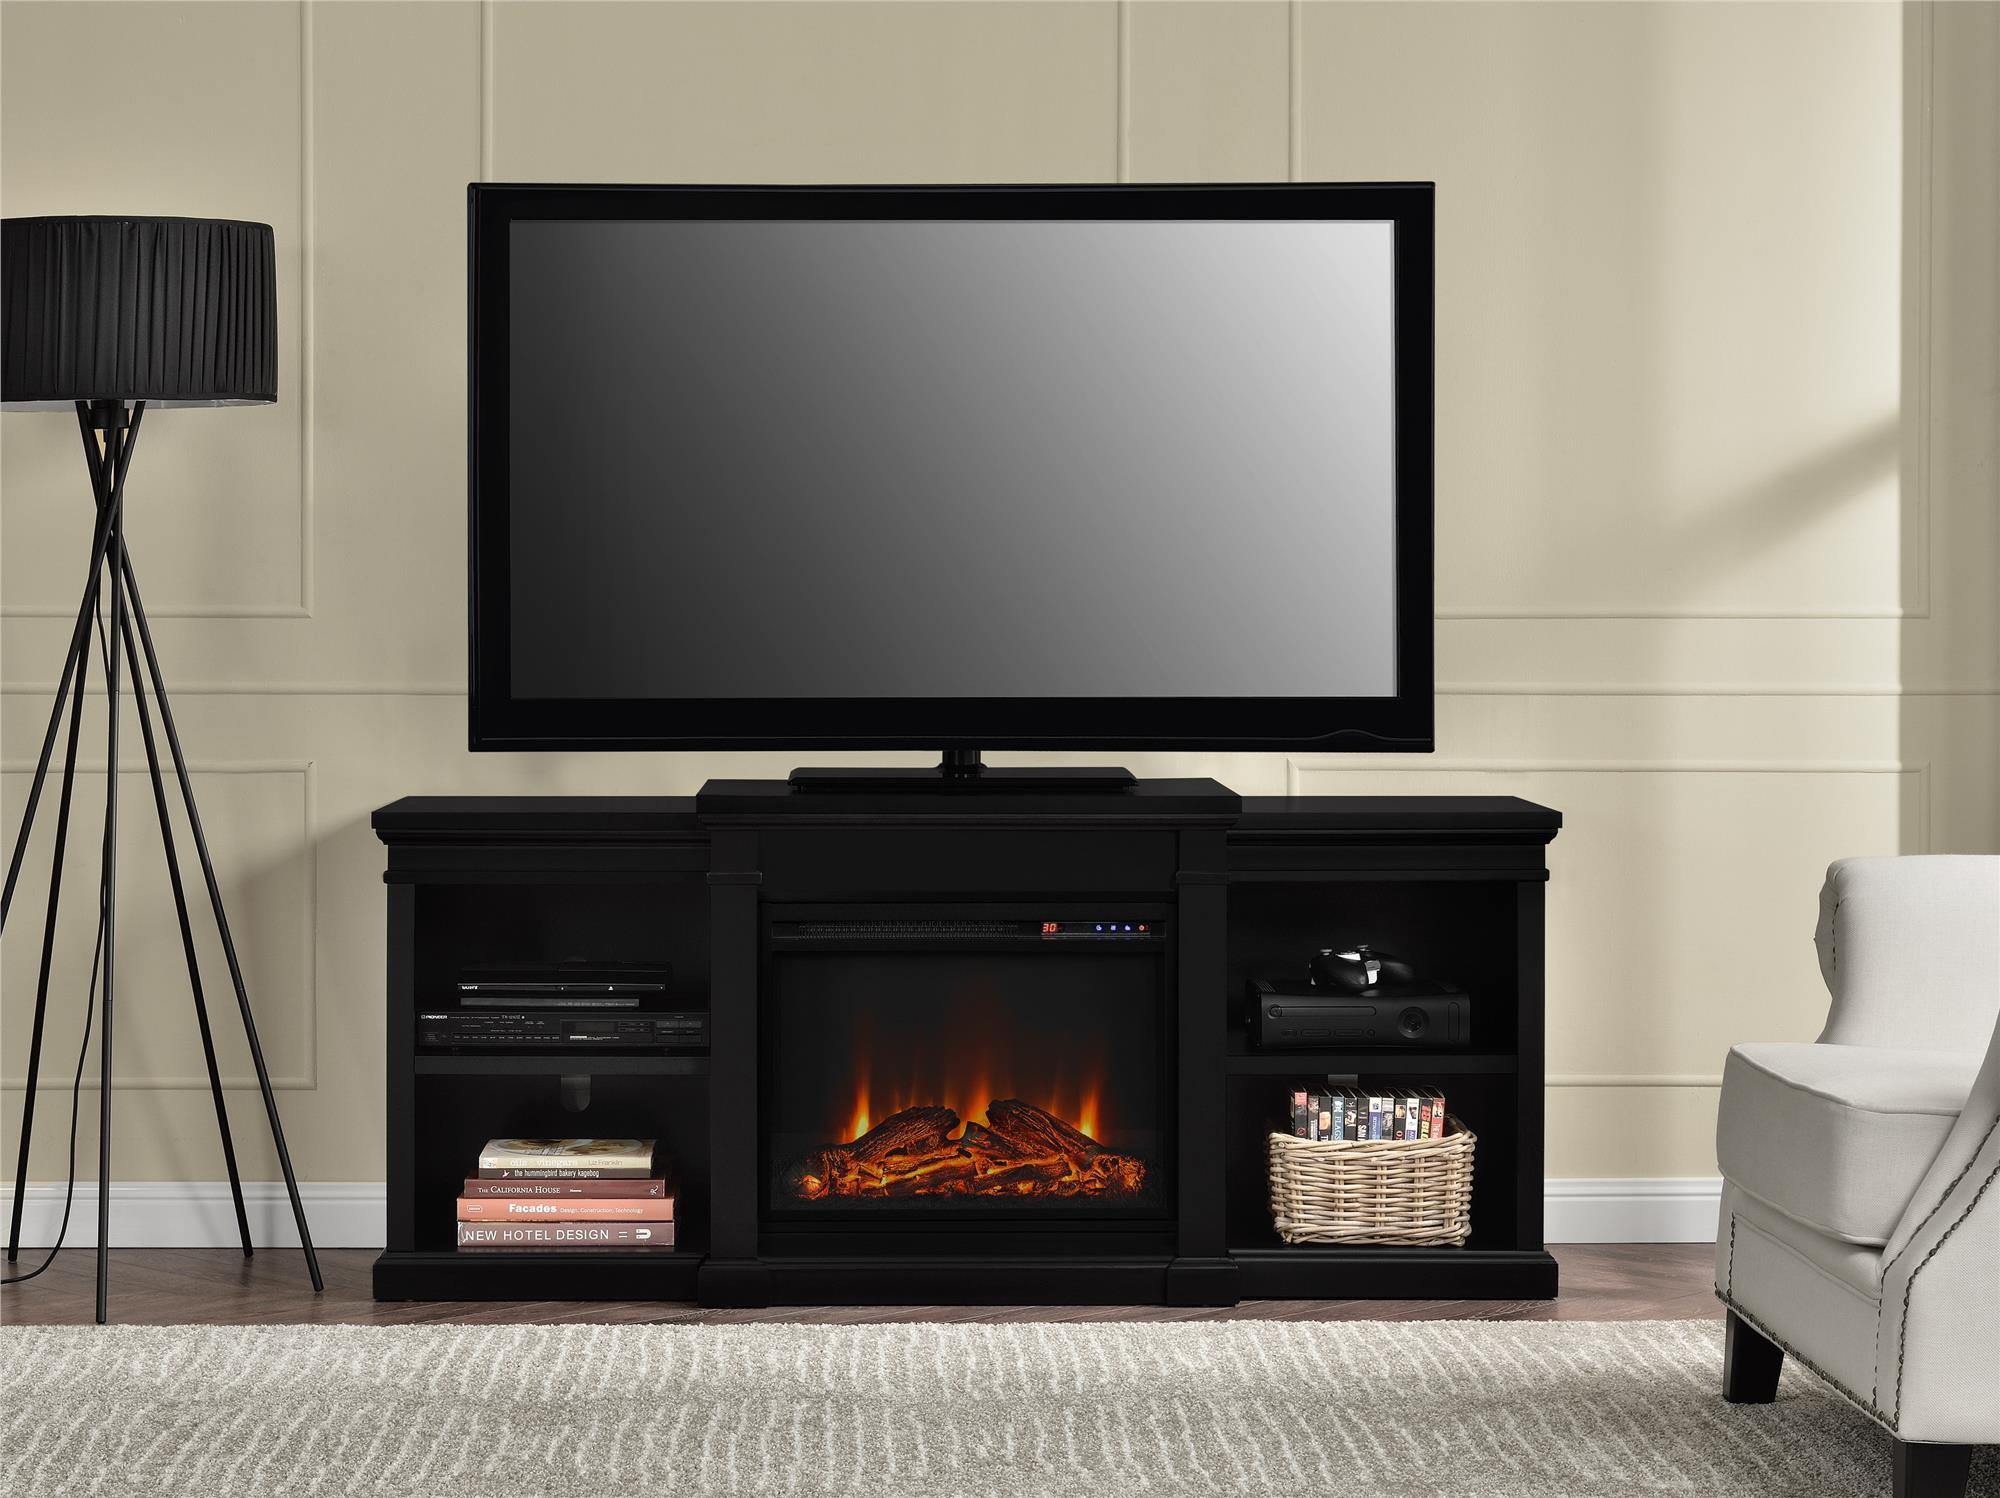 Sears Tv Stand With Fireplace